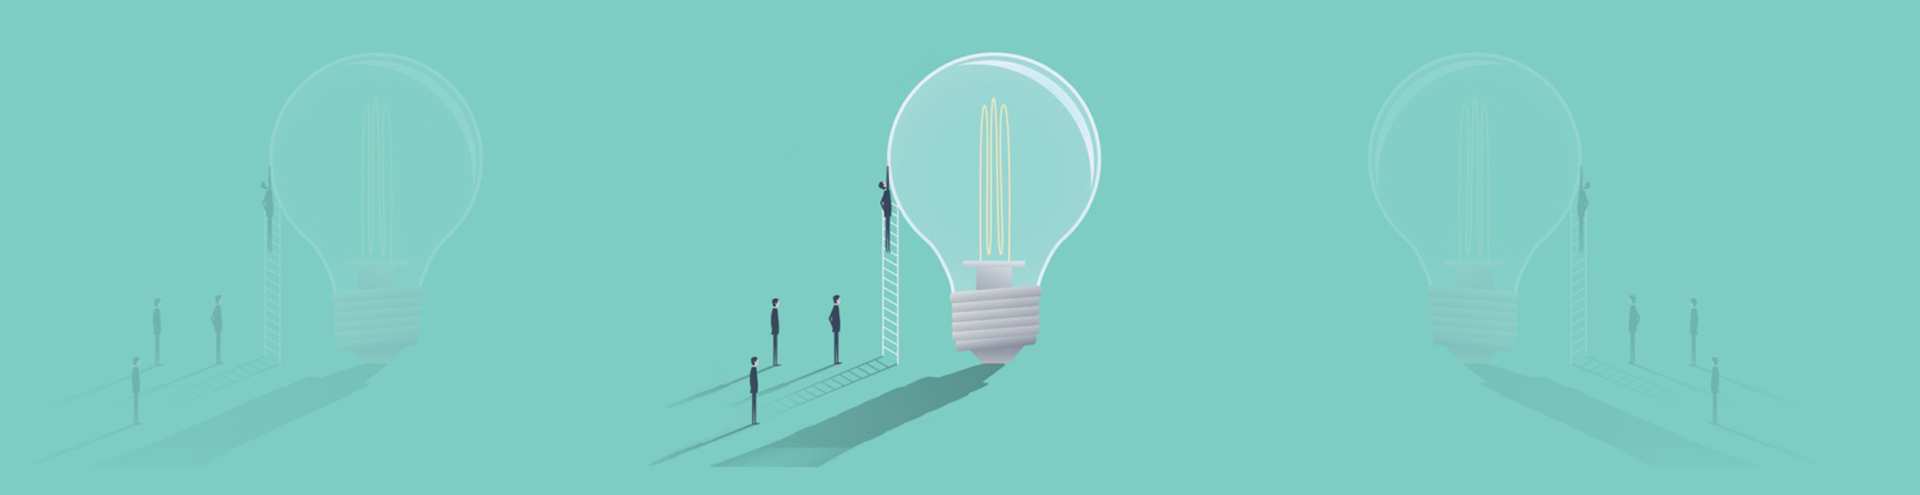 Strategies to Make Your Product Stand Out